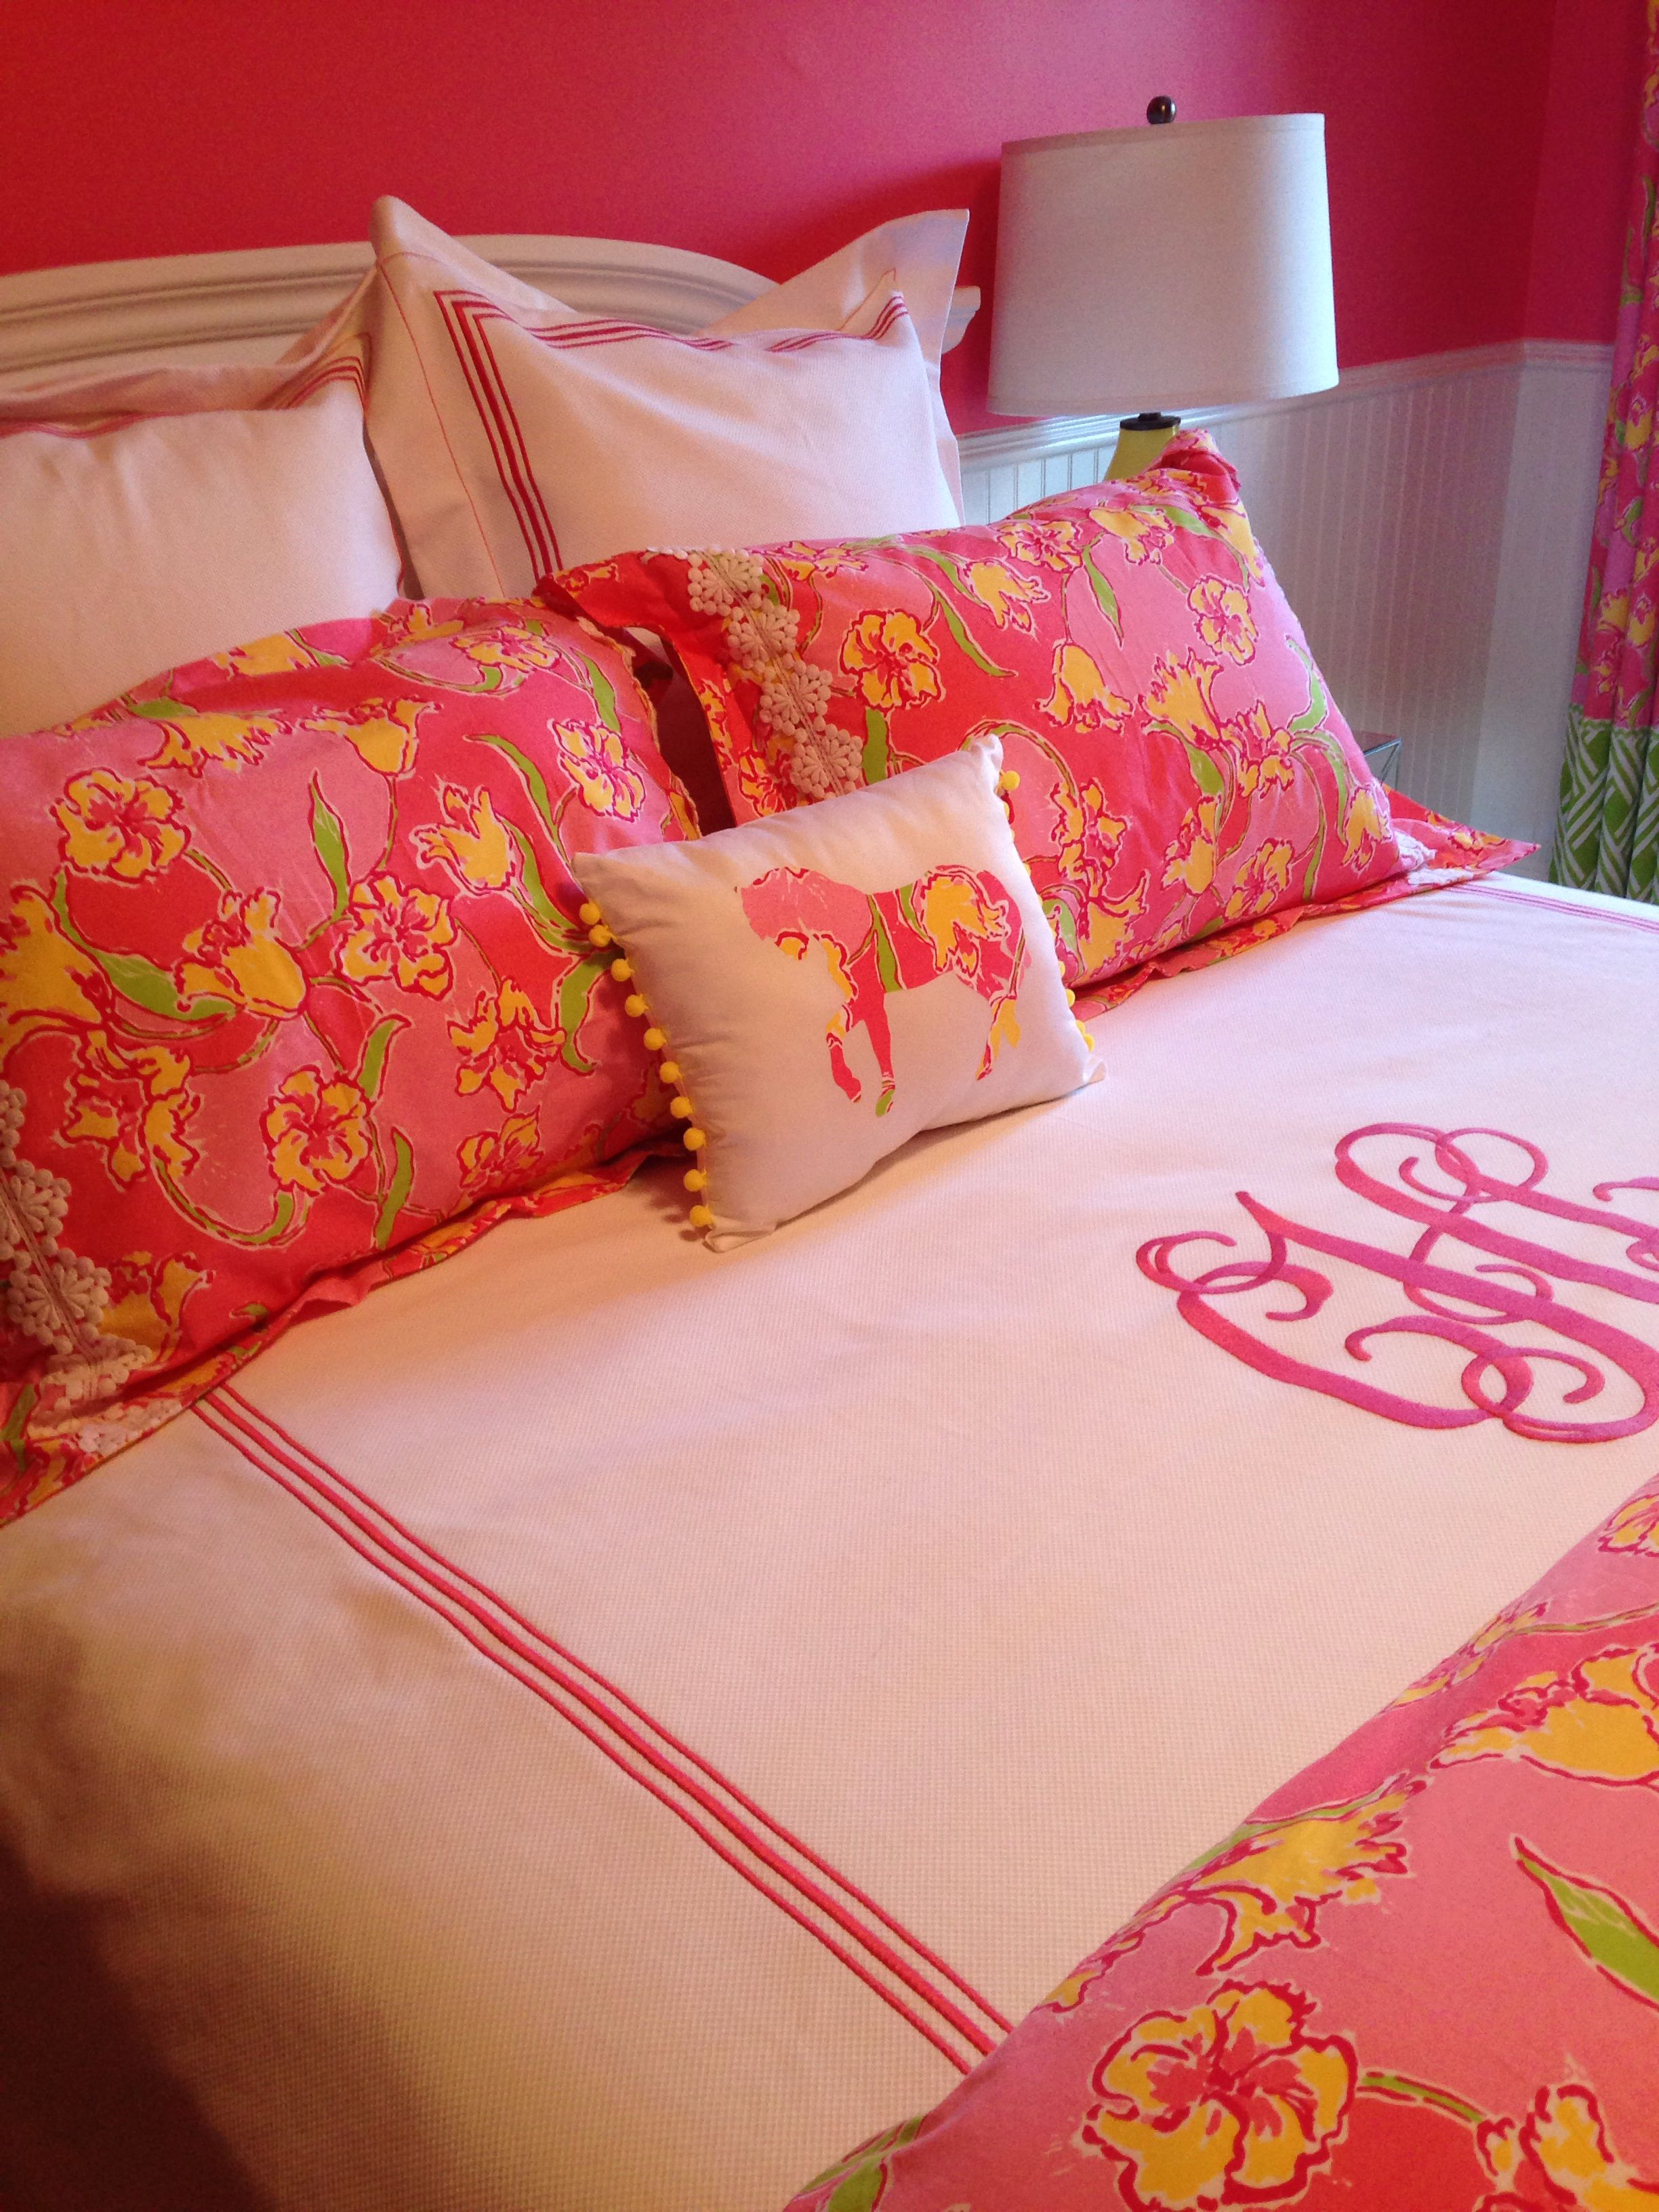 nsyd decorations unique shower curtain bathroom garnet bed unbelievable fascinating concept of and hill bedding lilly kids lily pulitzer amazing pict party inspiration drapes pic